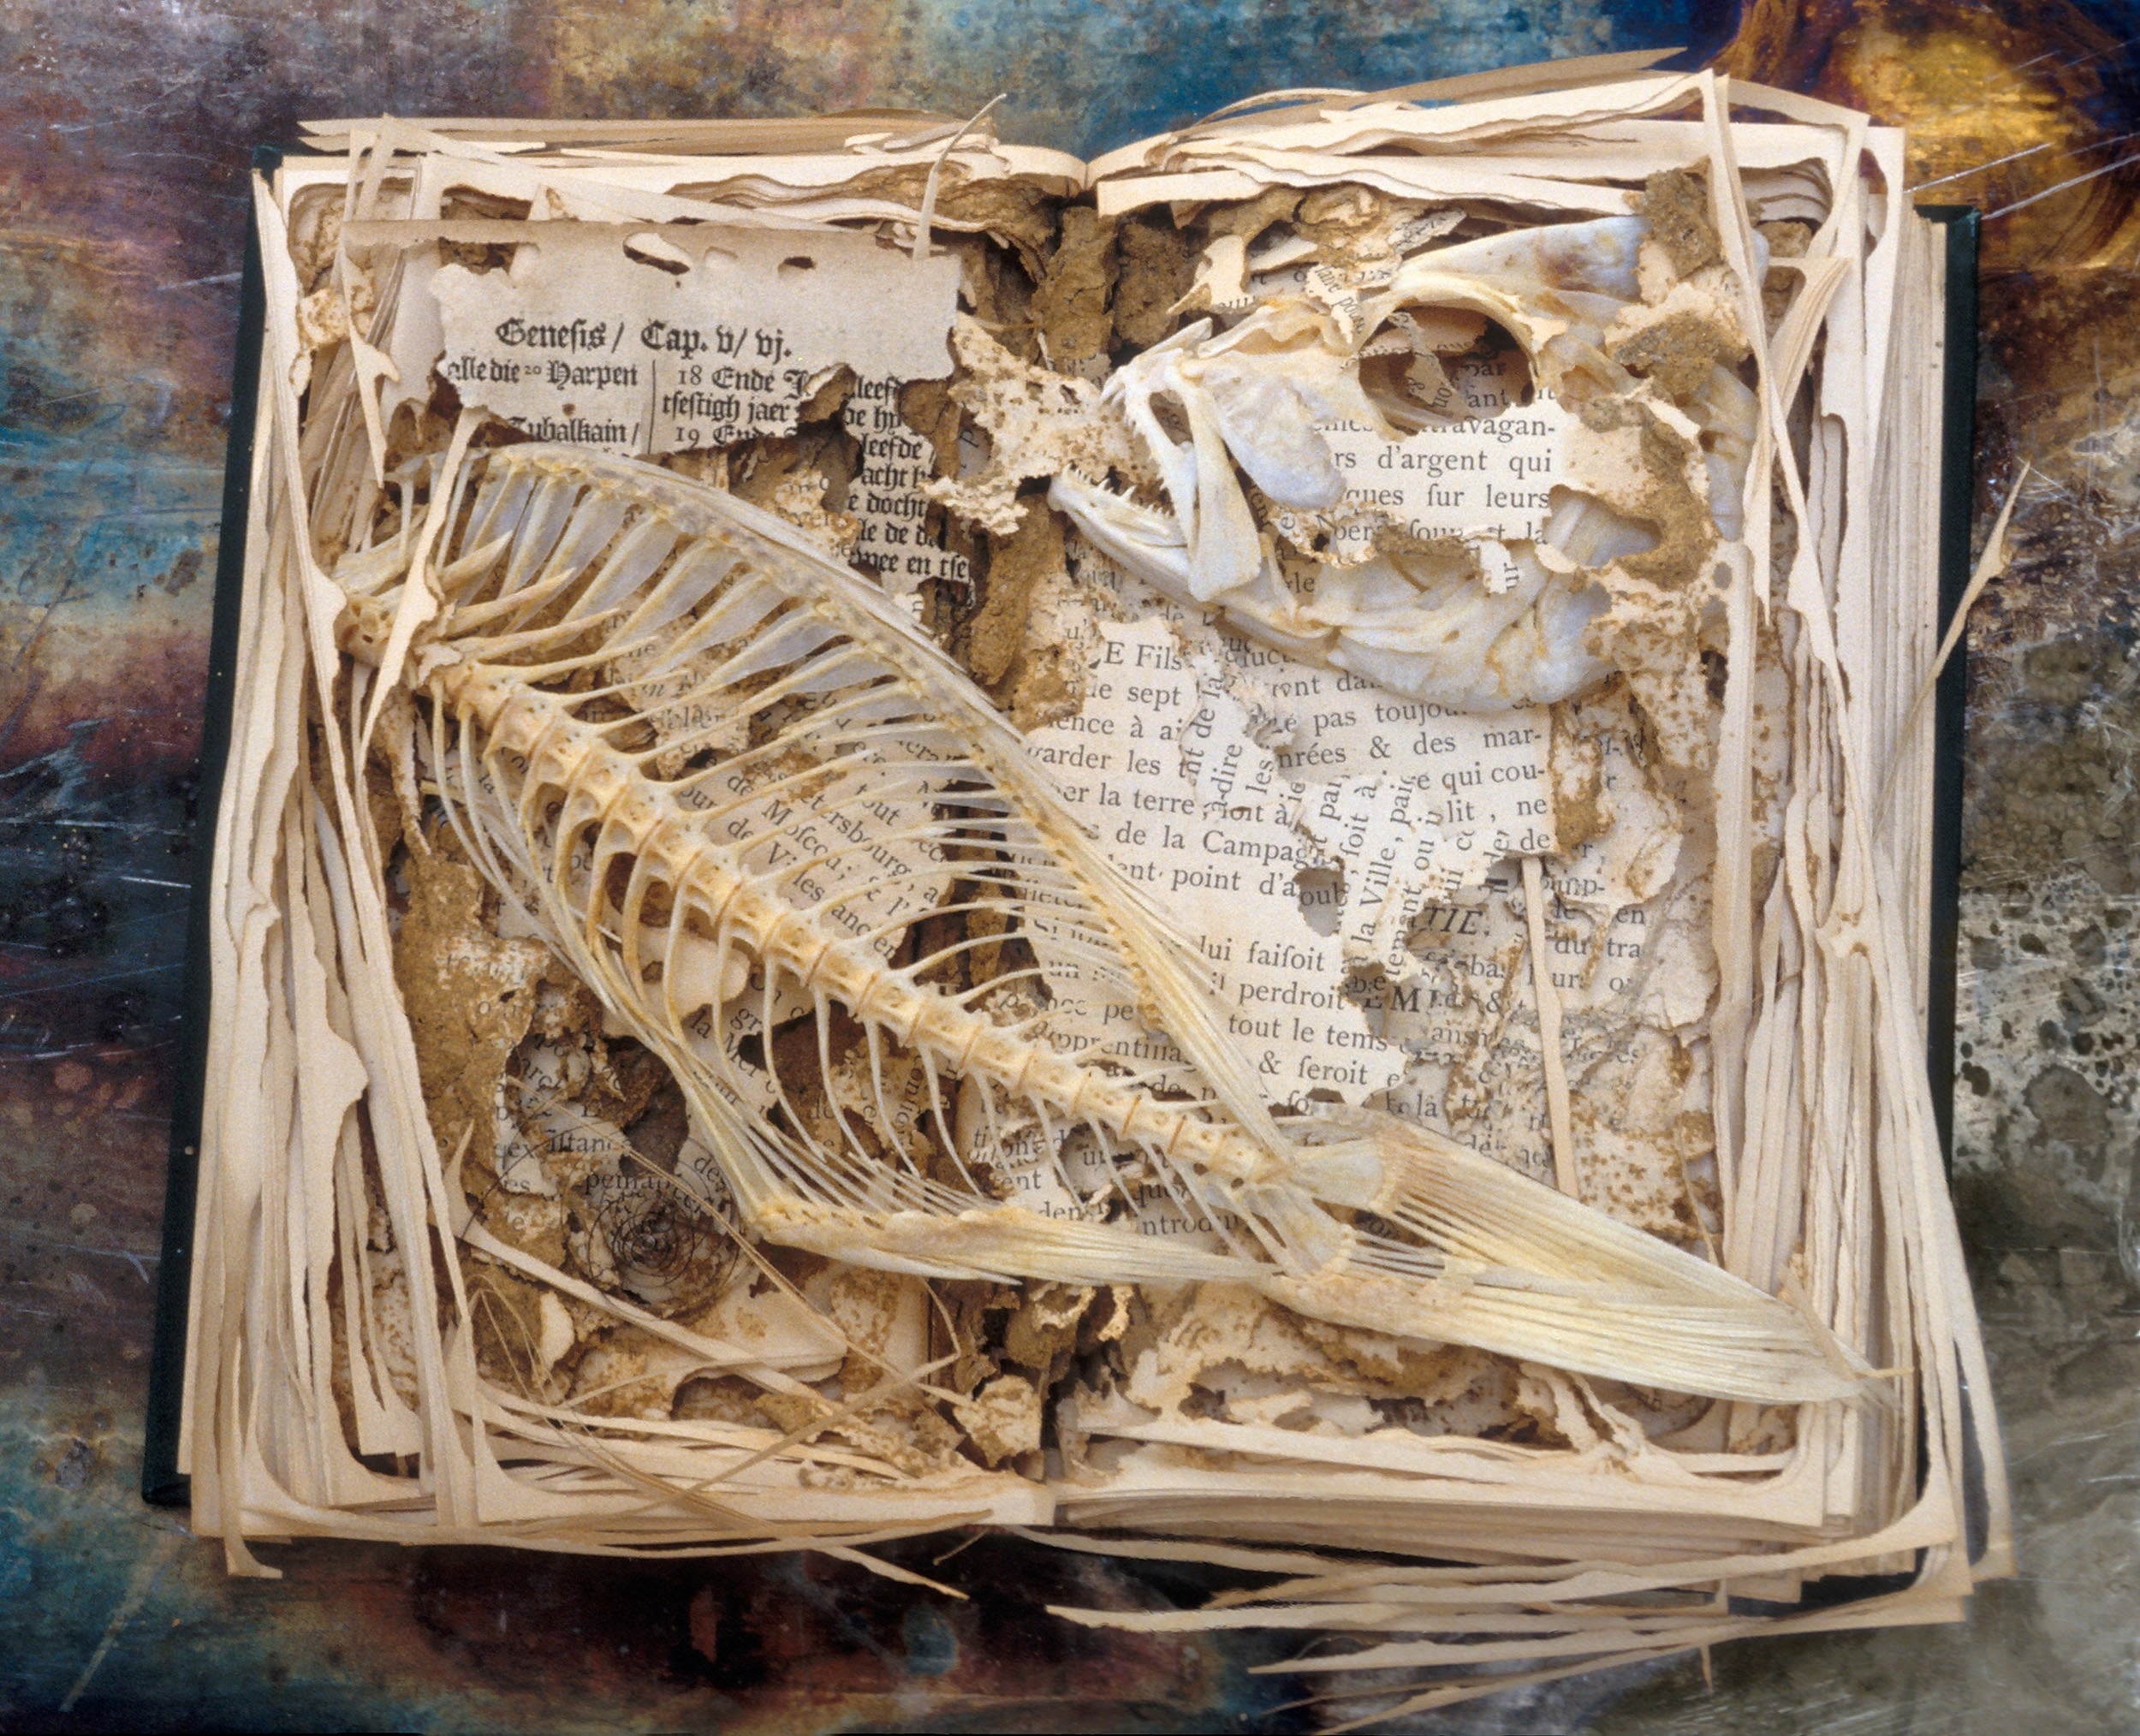 Fish bones placed on top of termite-damaged book.